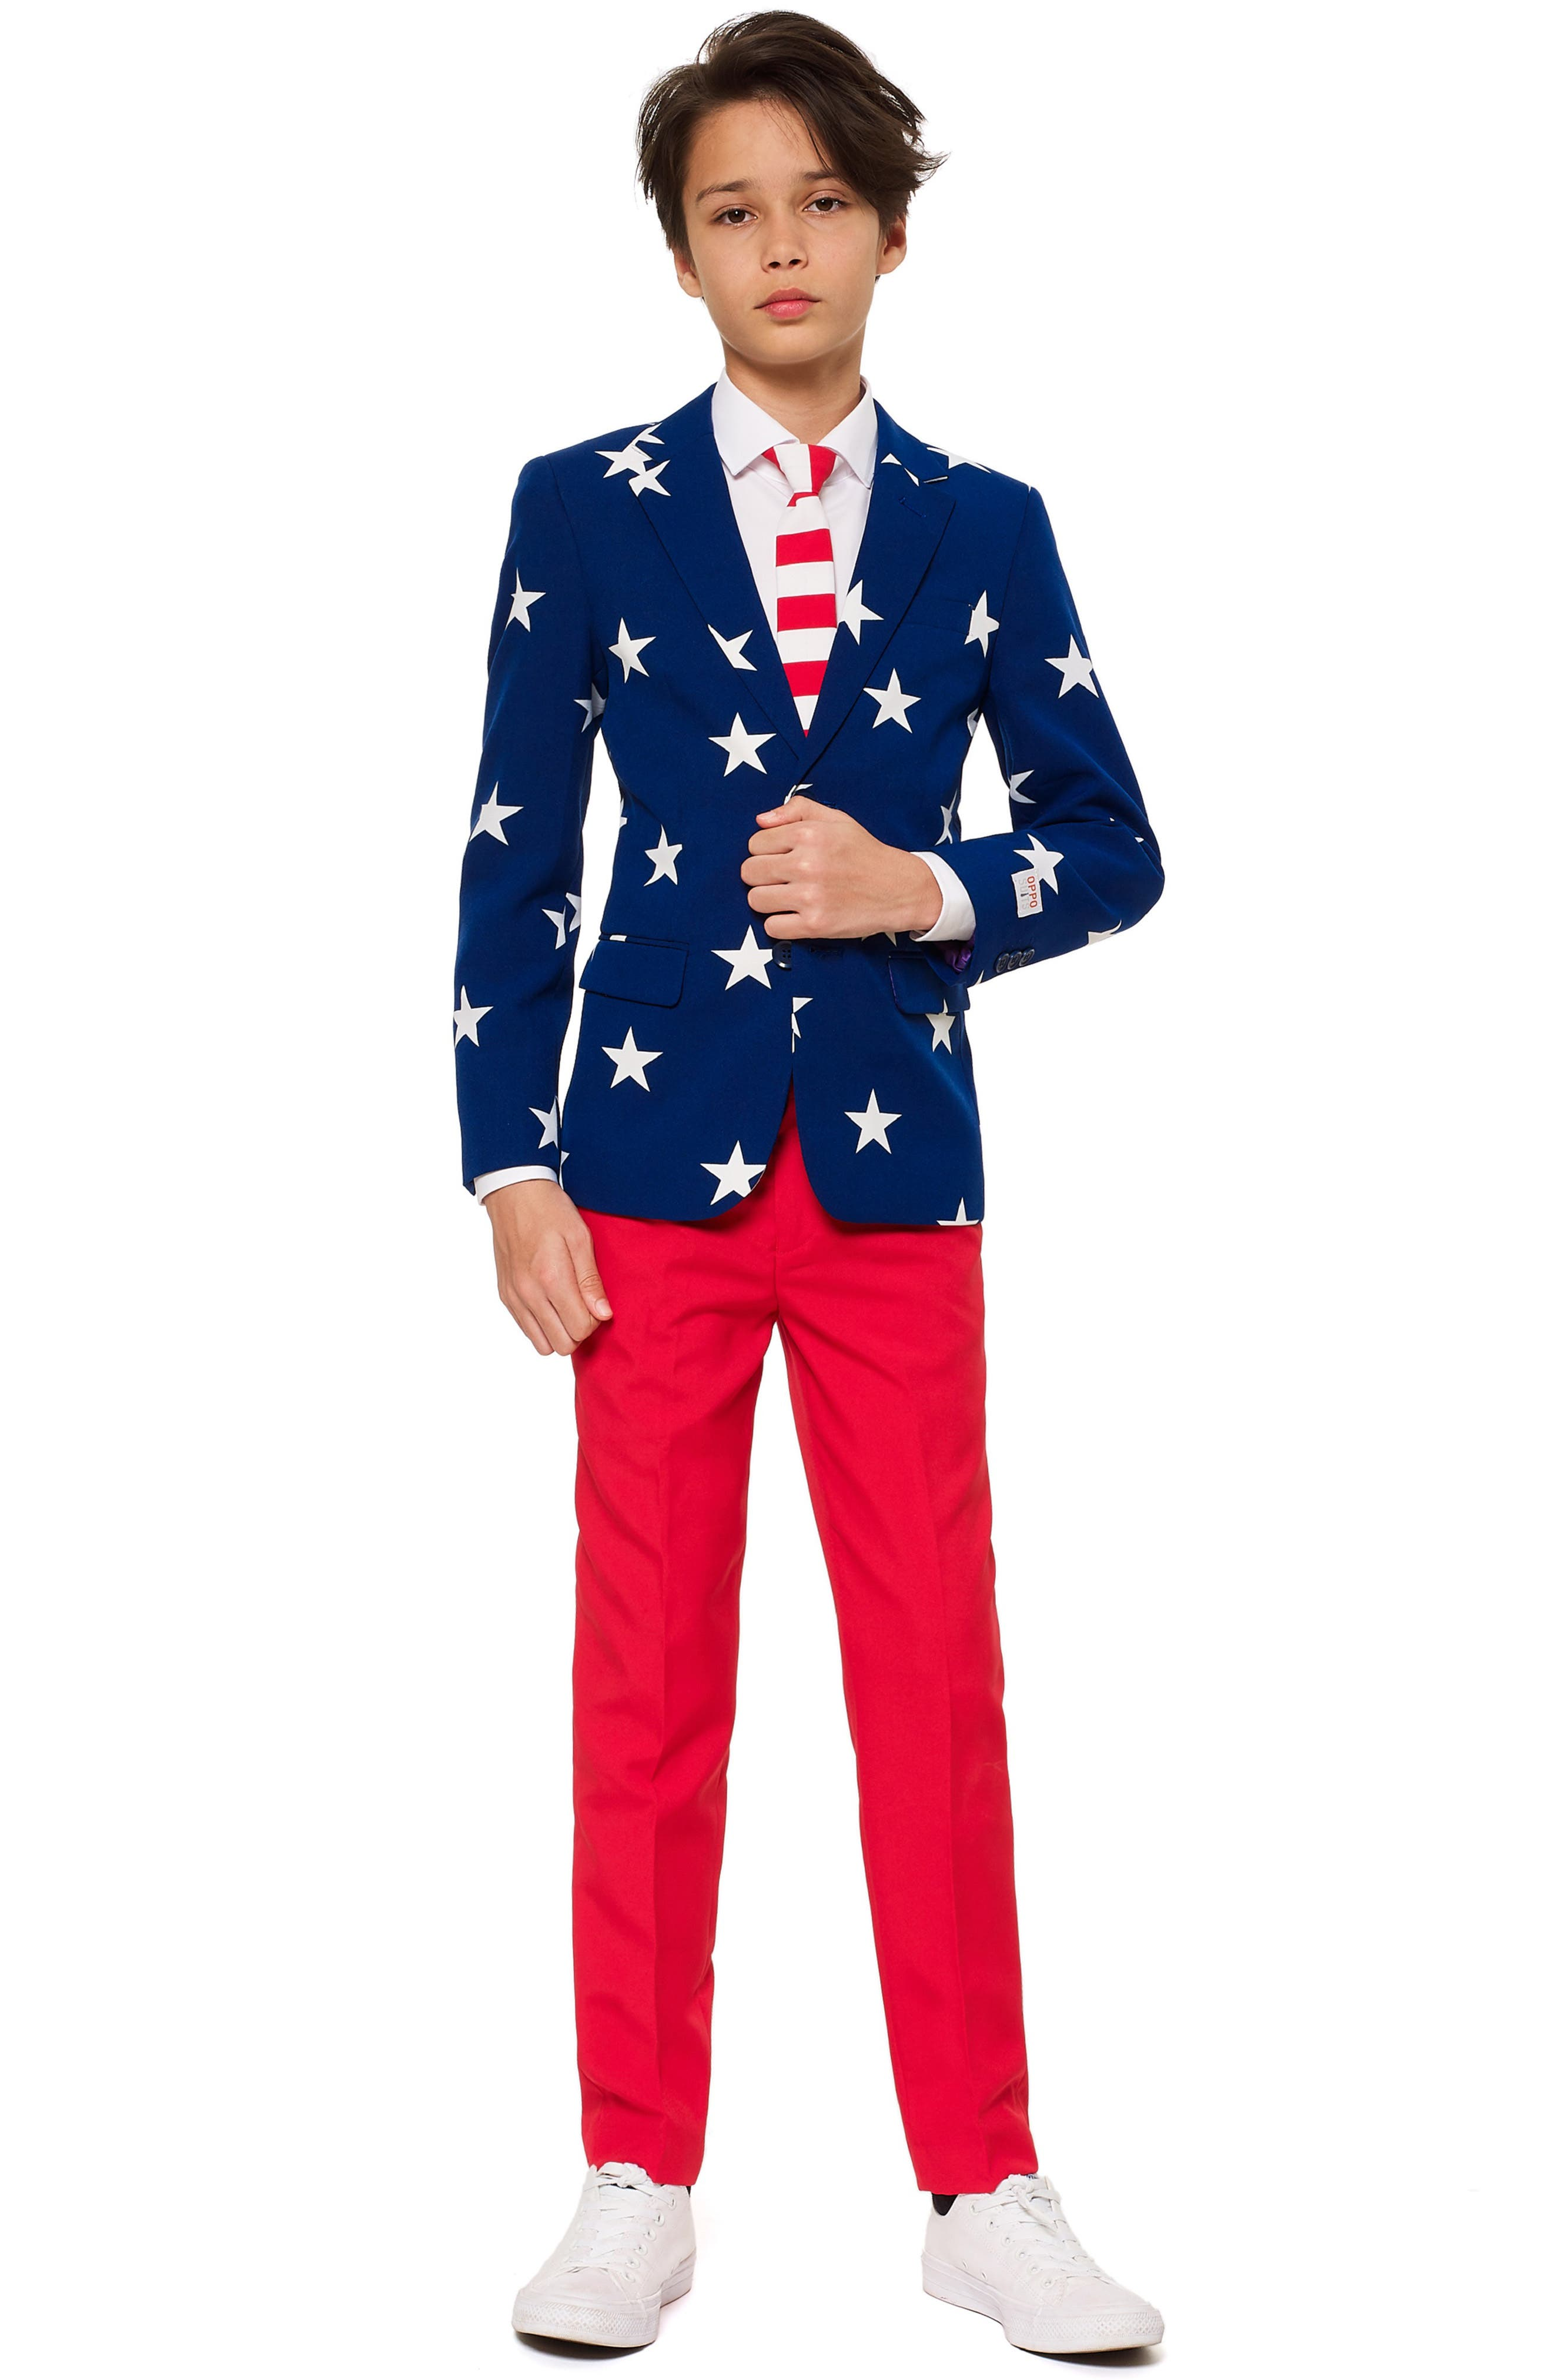 Stars & Stripes Two-Piece Suit with Tie,                         Main,                         color, BLUE/ WHITE